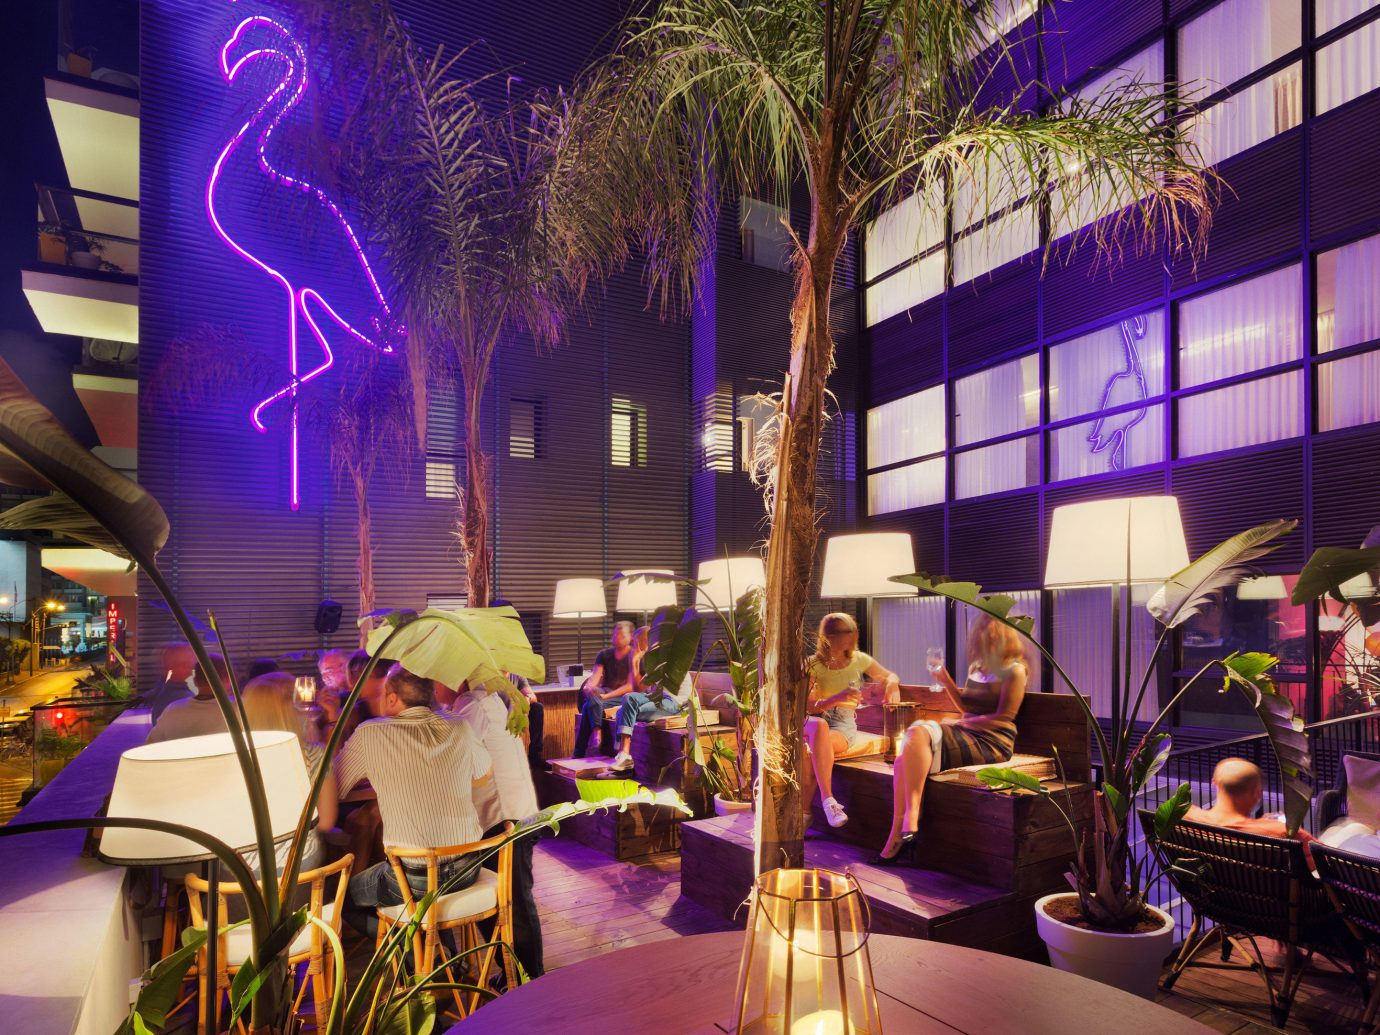 Boutique Hotels Festivals + Events Hotels Trip Ideas meal restaurant function hall Resort